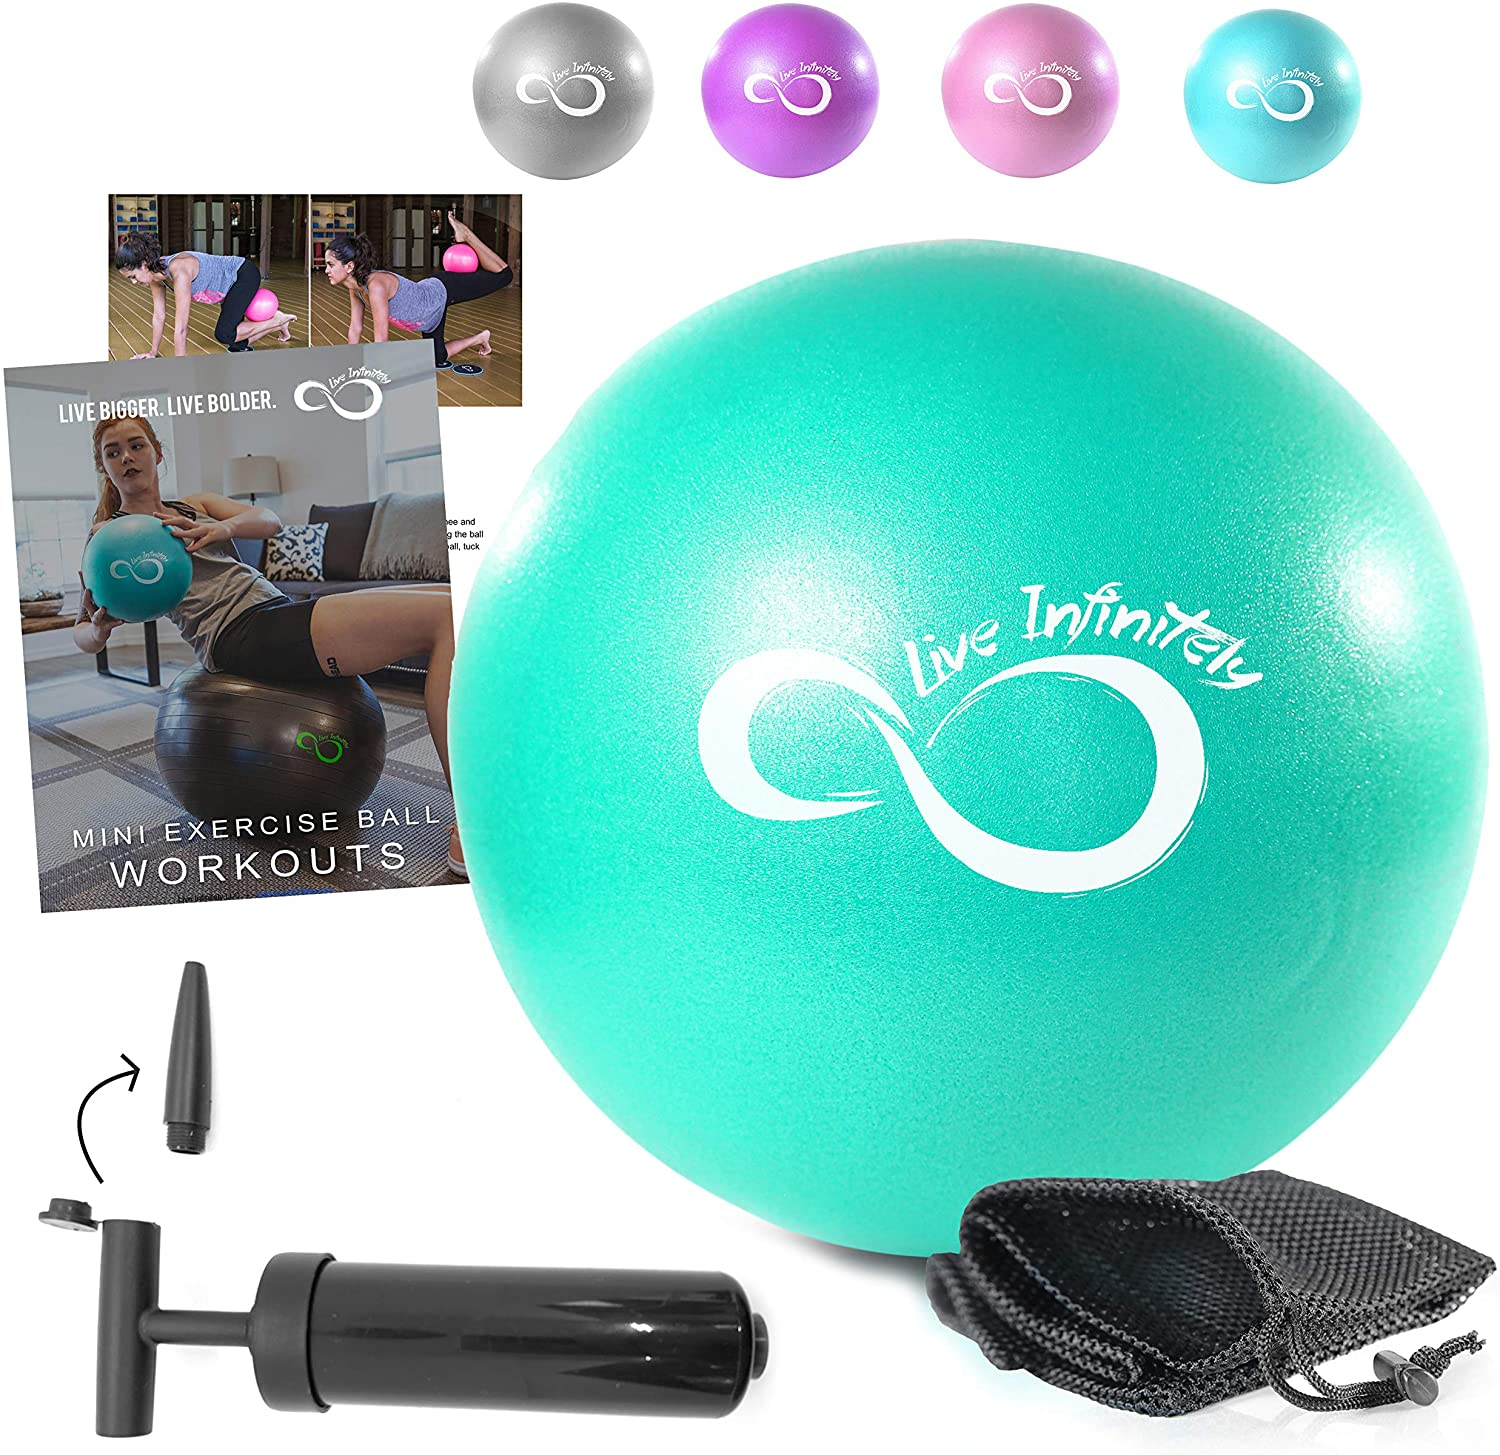 Yoga Pilates Core Training and Physical Therapy 9.8 Inch Small Bender Ball for Stability Barre KNDDYY Mini Exercise Ball